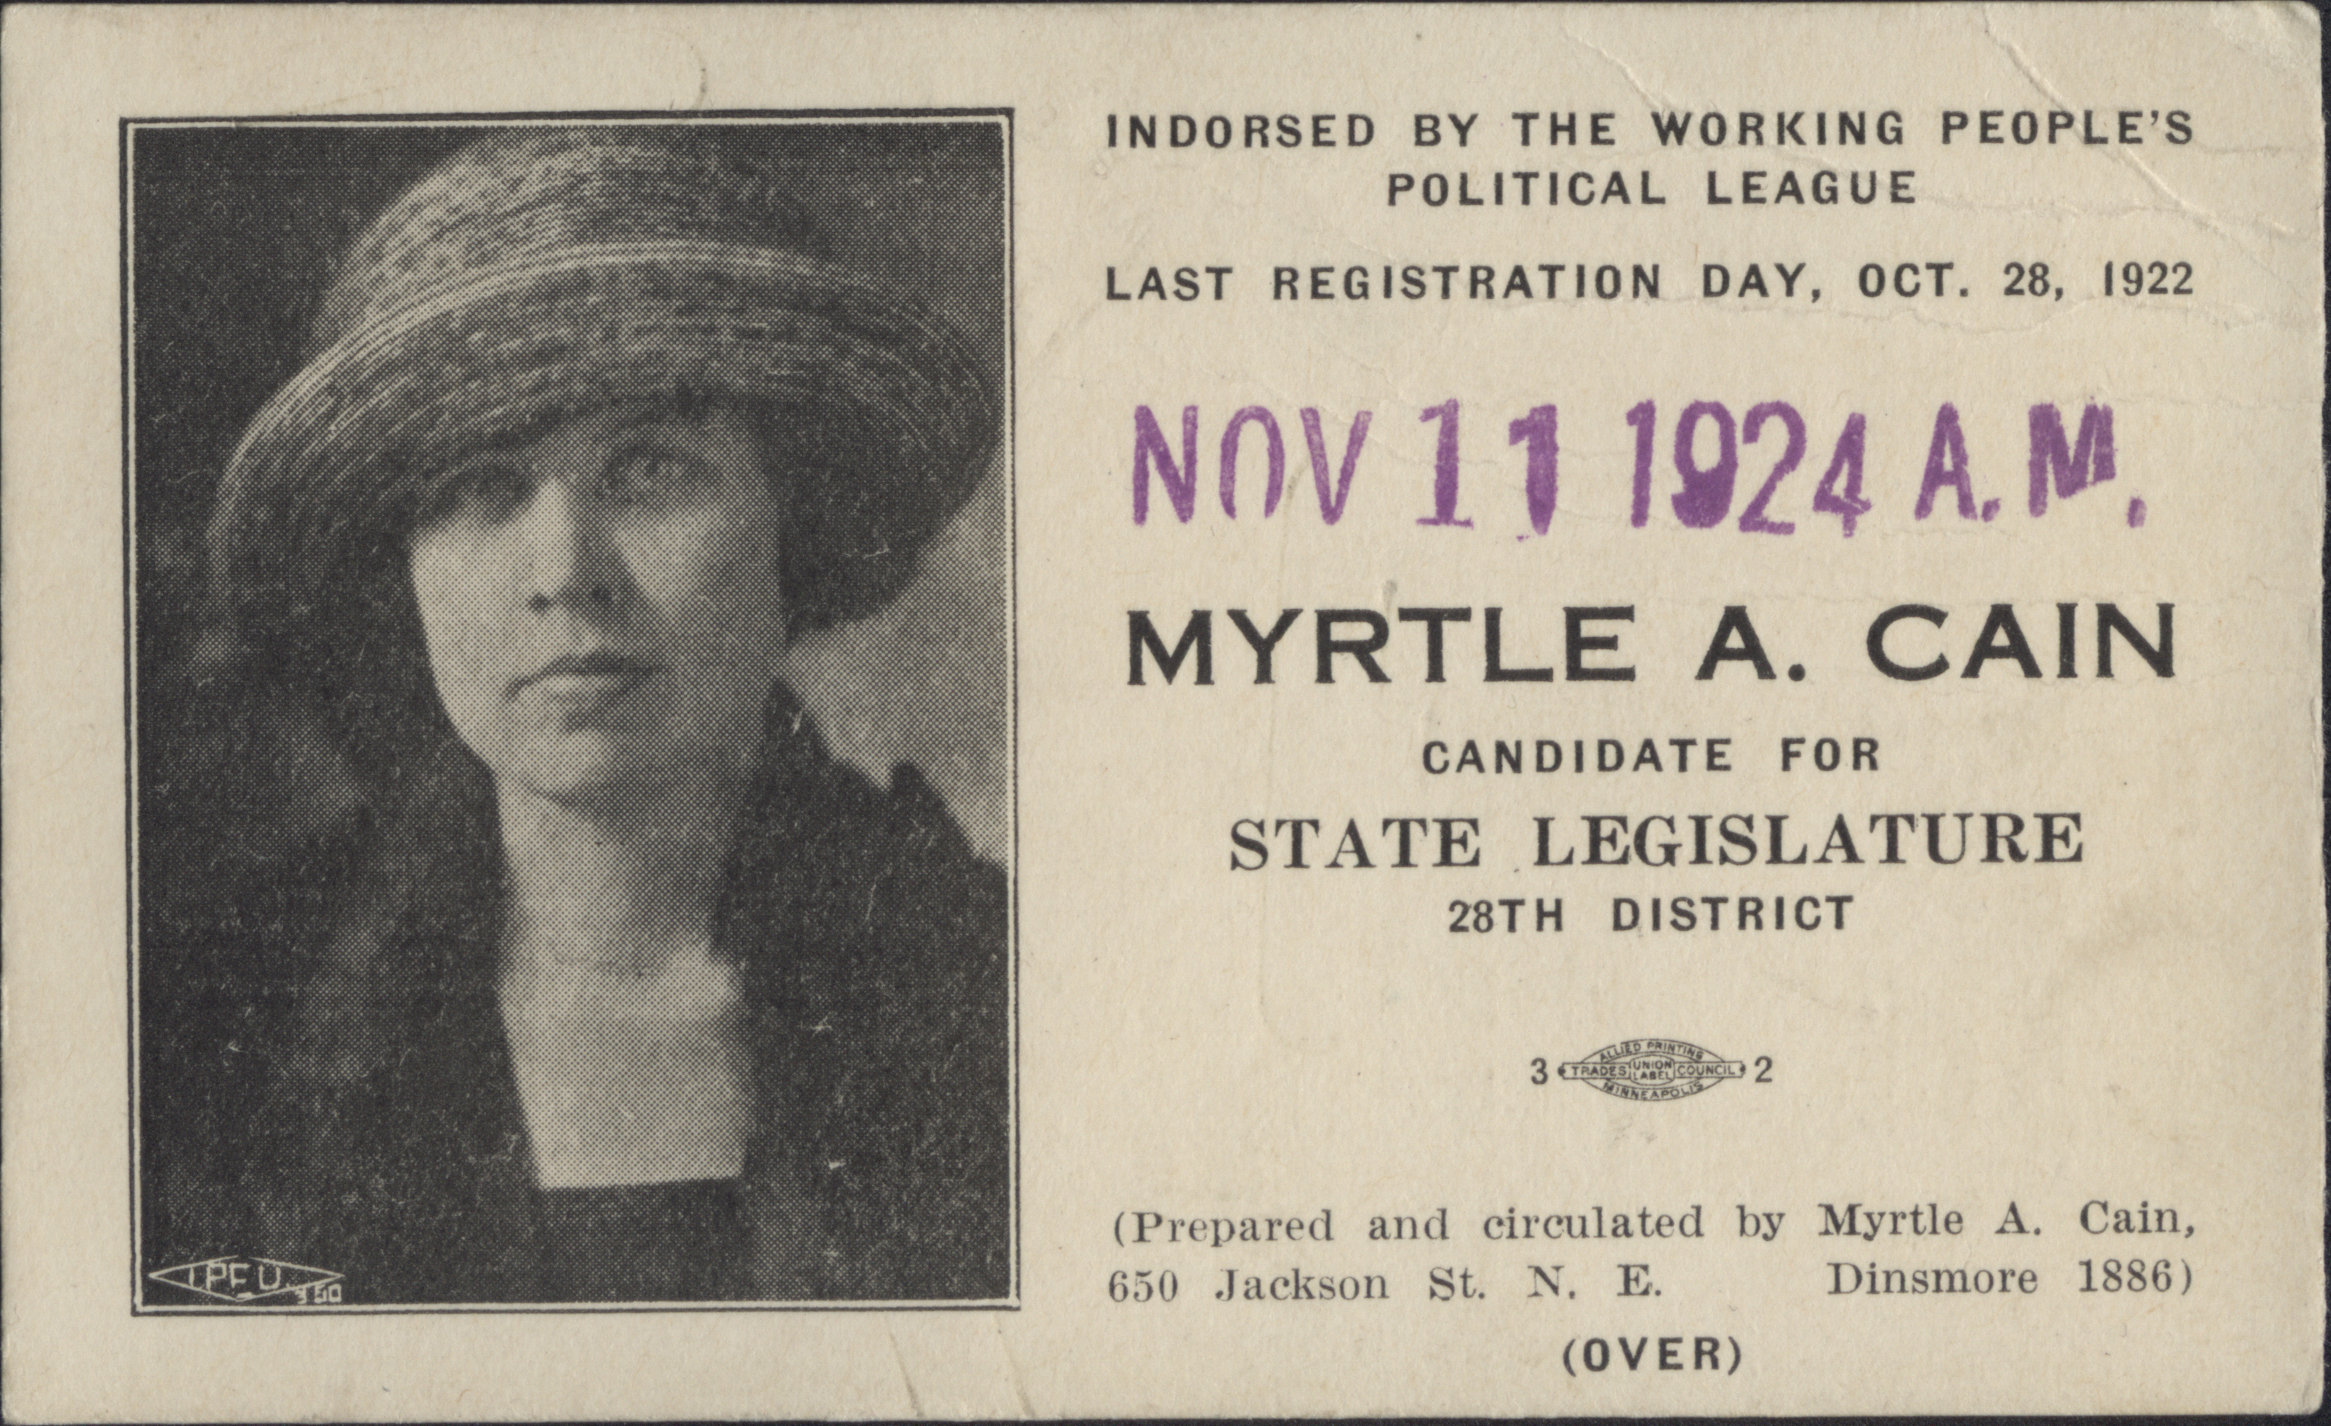 myrtle cain, voter card, side one, hclib vertical files